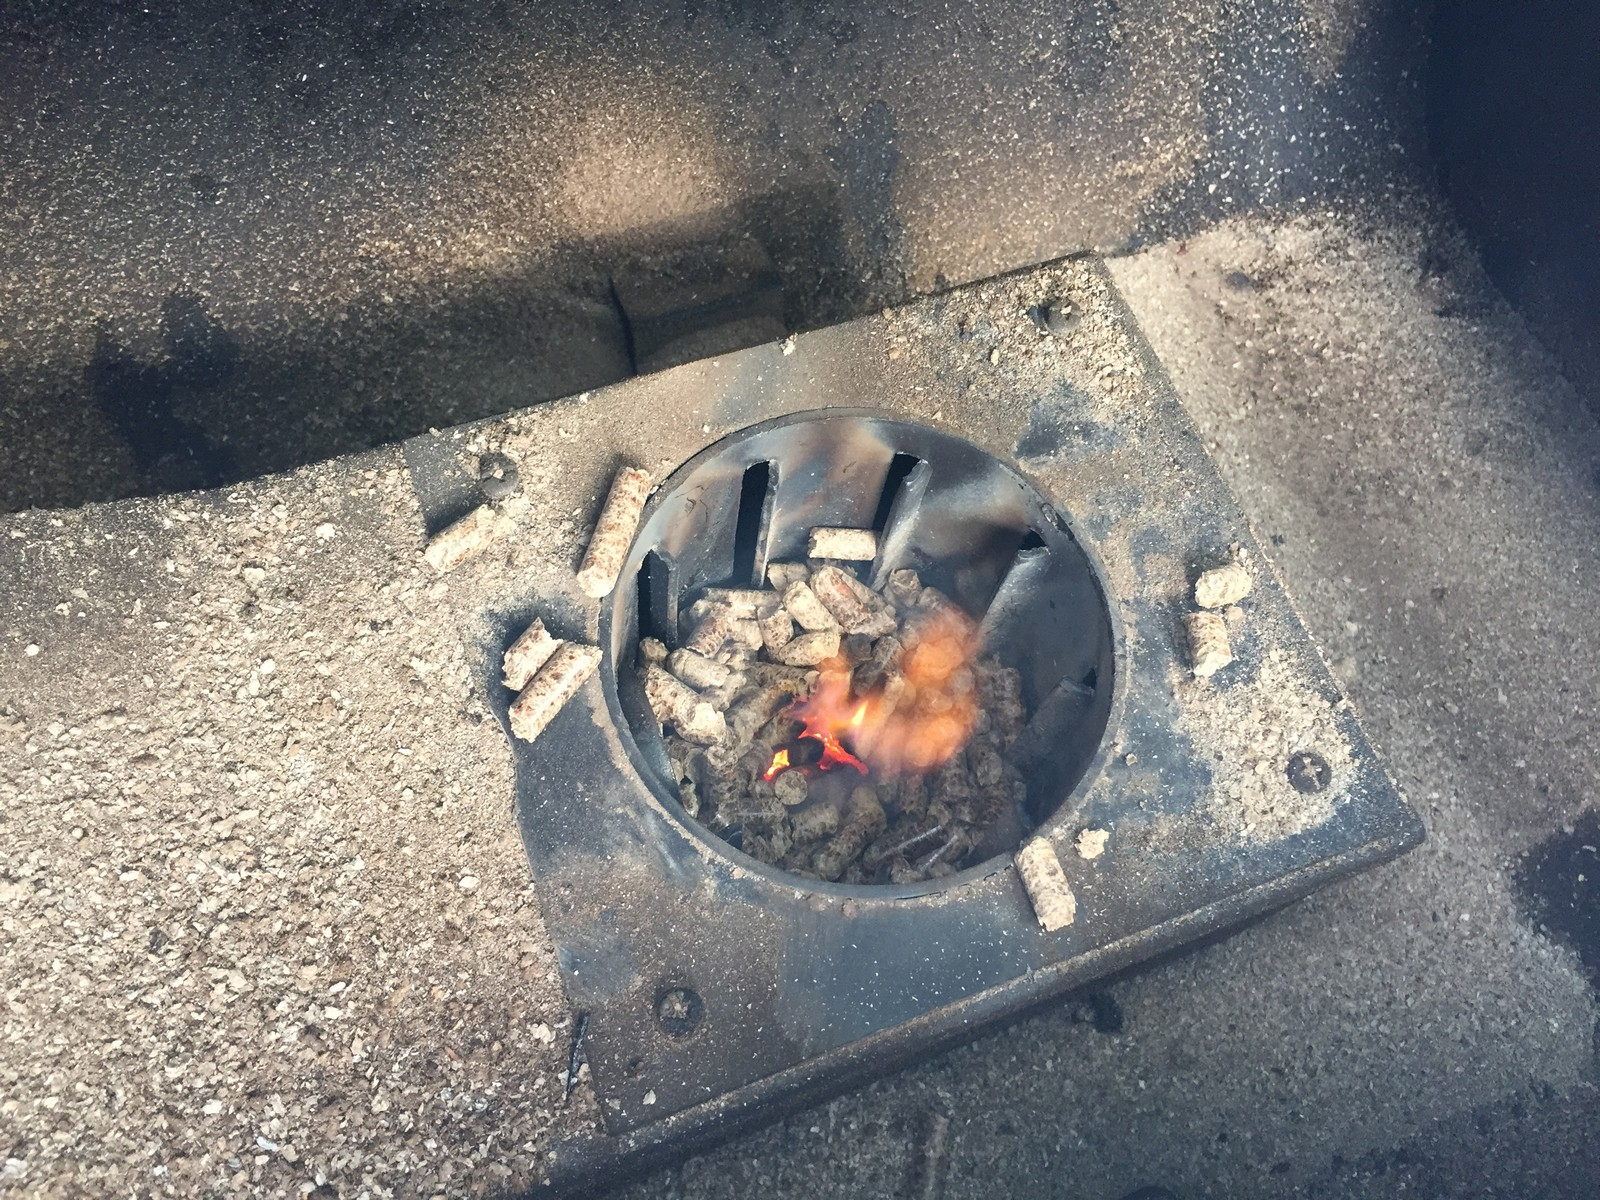 Once the pellets ignite, the flame is varied by feeding more (or fewer) pellets in. The smoker heats up faster than it cools down. You can help it cool down faster by opening the lid.